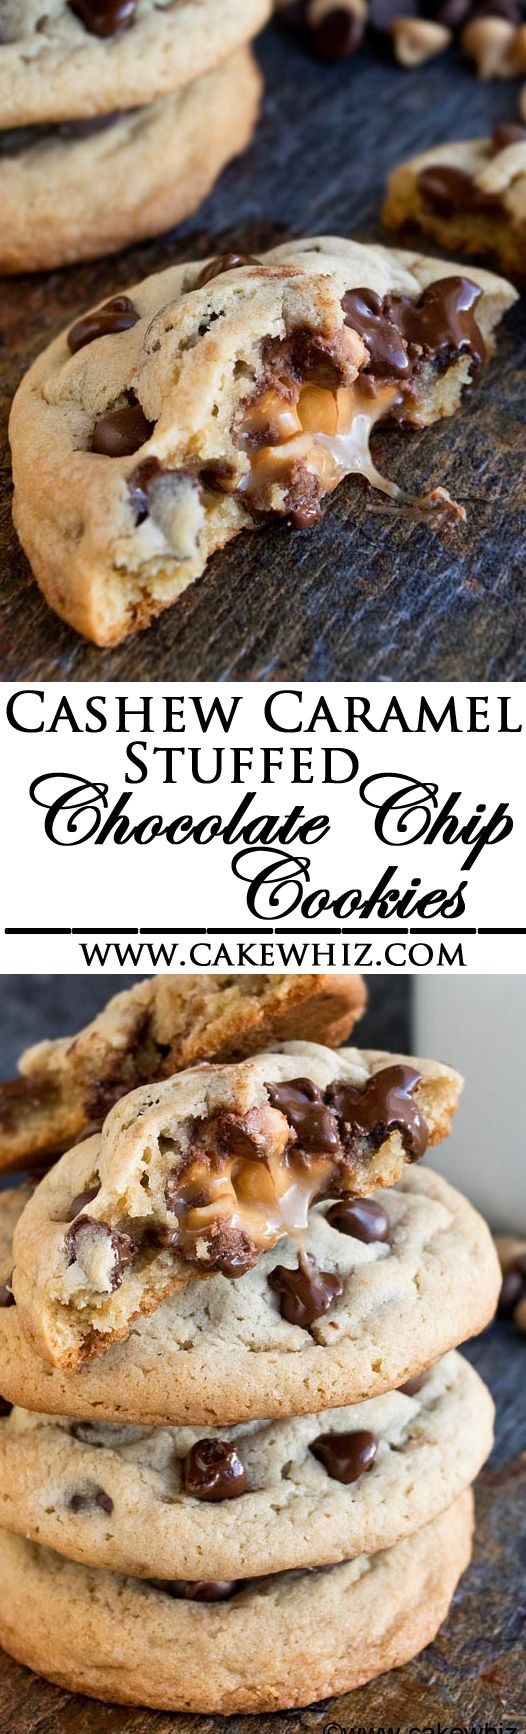 These soft and chewy CASHEW CARAMEL STUFFED CHOCOLATE CHIP COOKIES are so ooey gooey. They are huge, just like bakery style cookies and very easy to make! (Ad) From cakewhiz.com